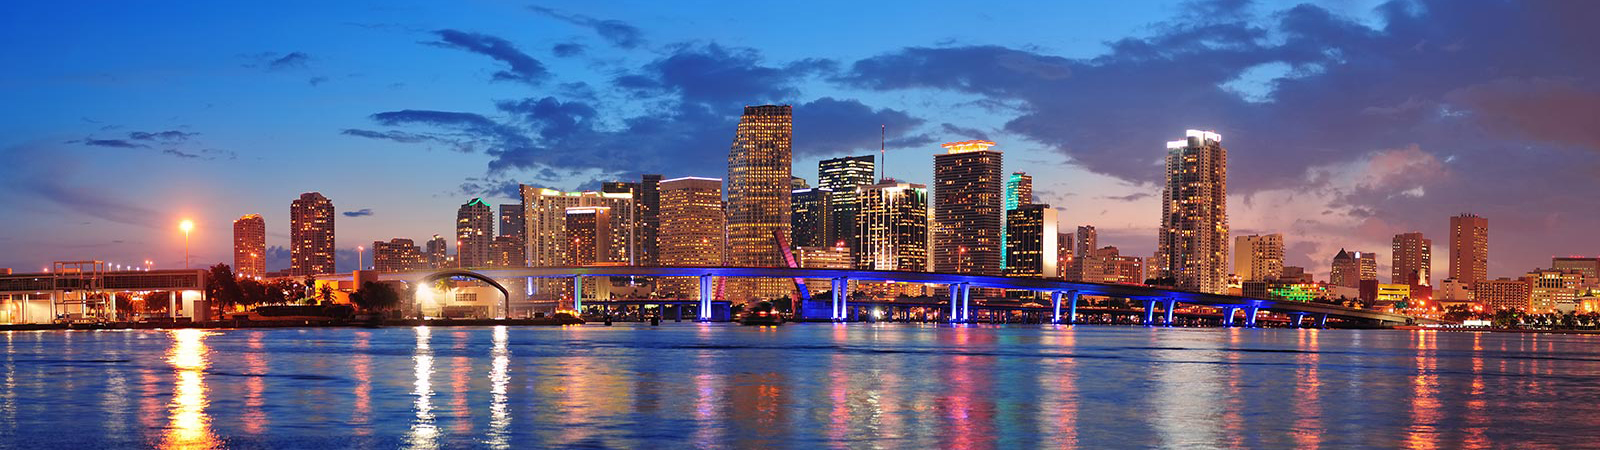 Brickell District